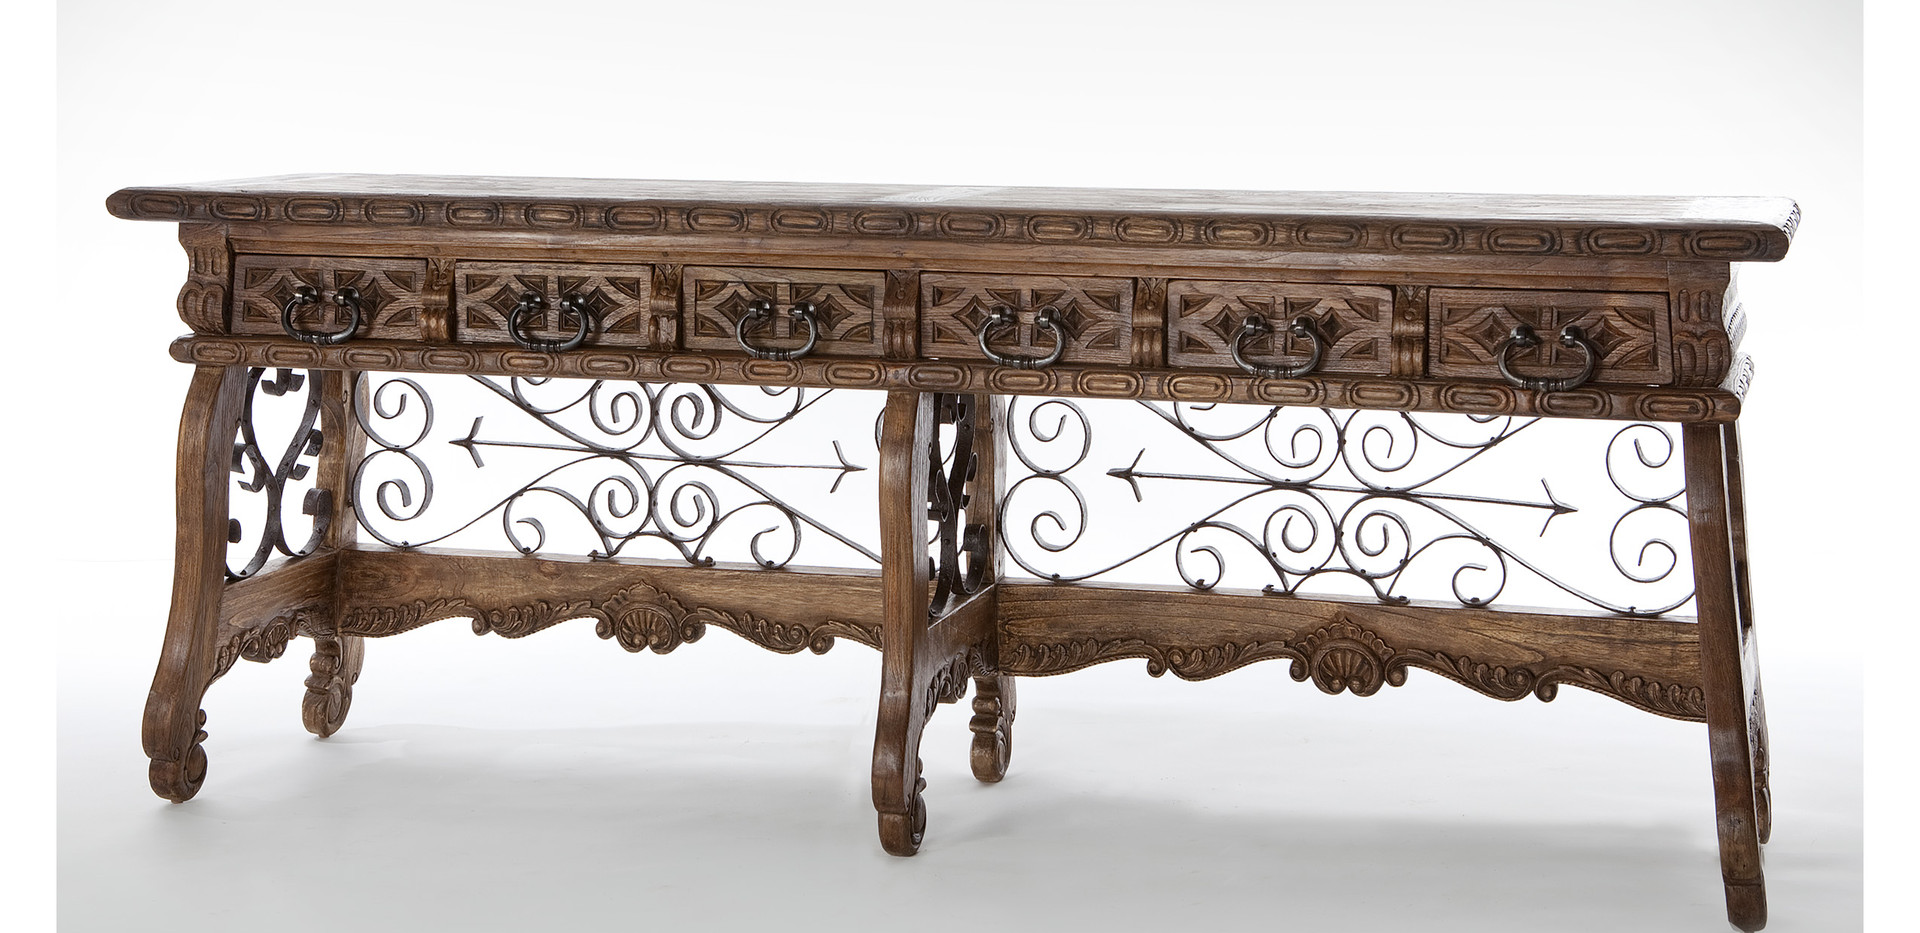 Jason Scott Spanish Prison Console Table - 6 Legs